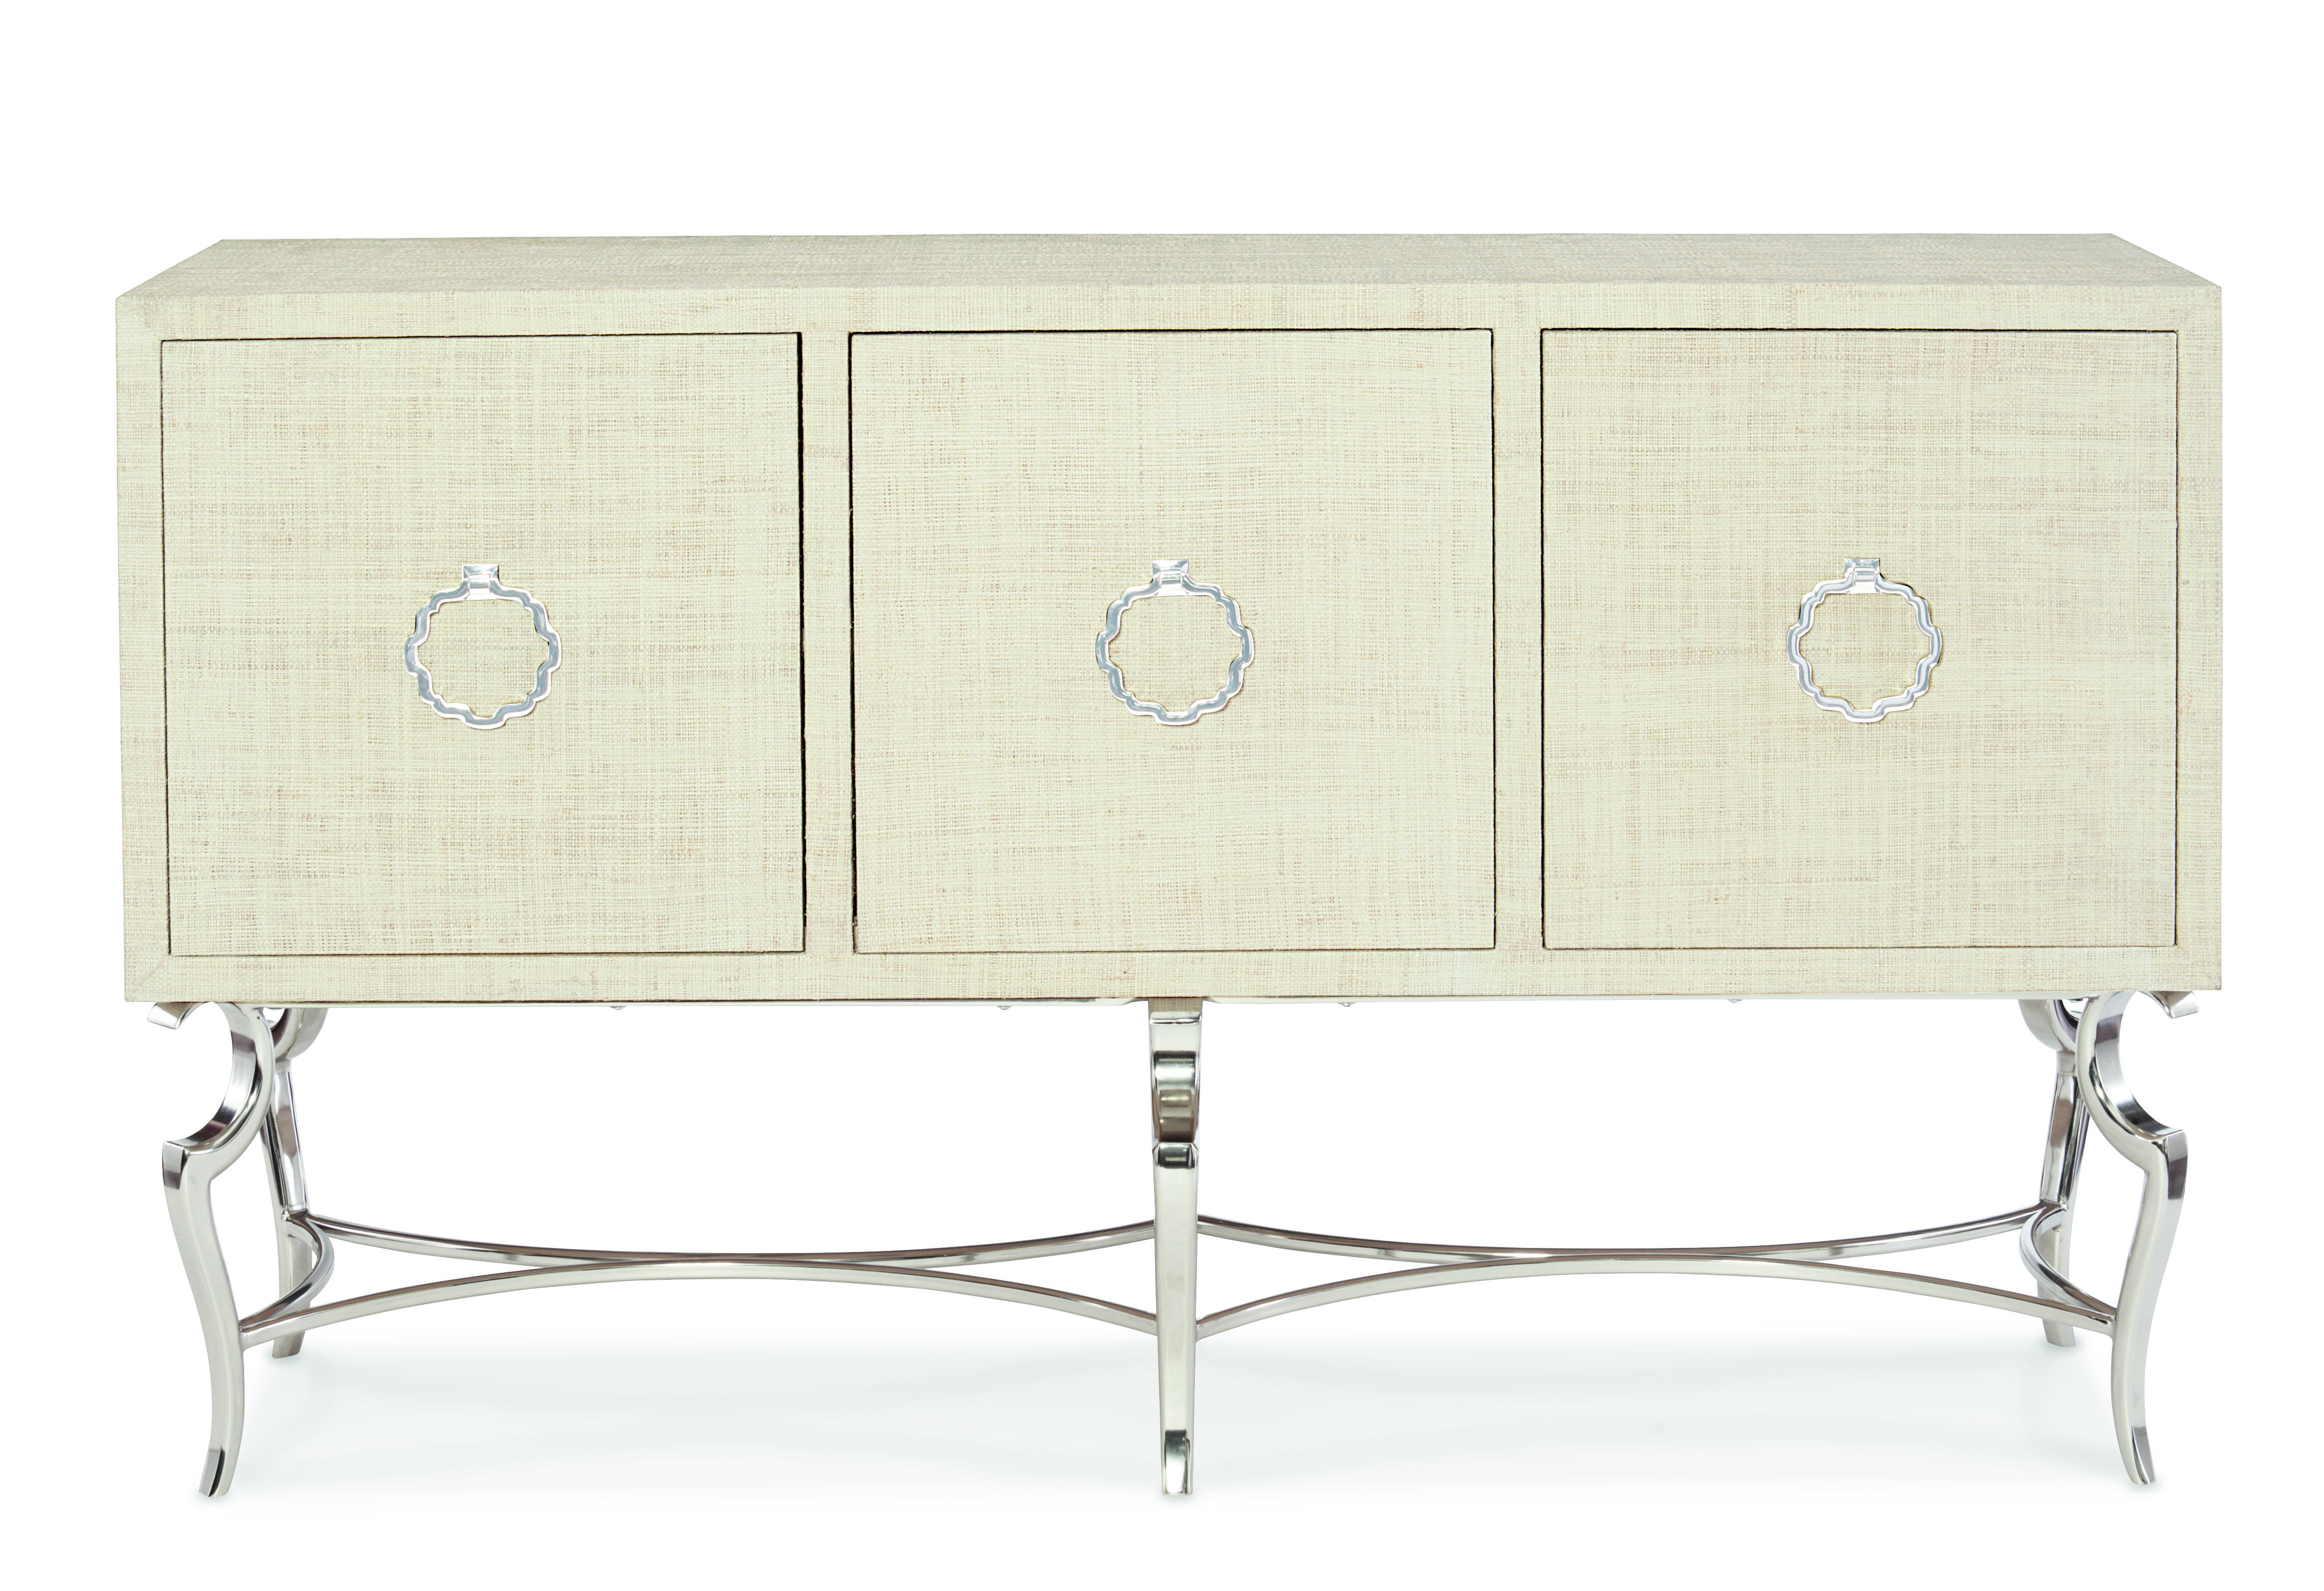 Designed By Bernhardt Furniture Available At Robb Stucky Interiordesignideas